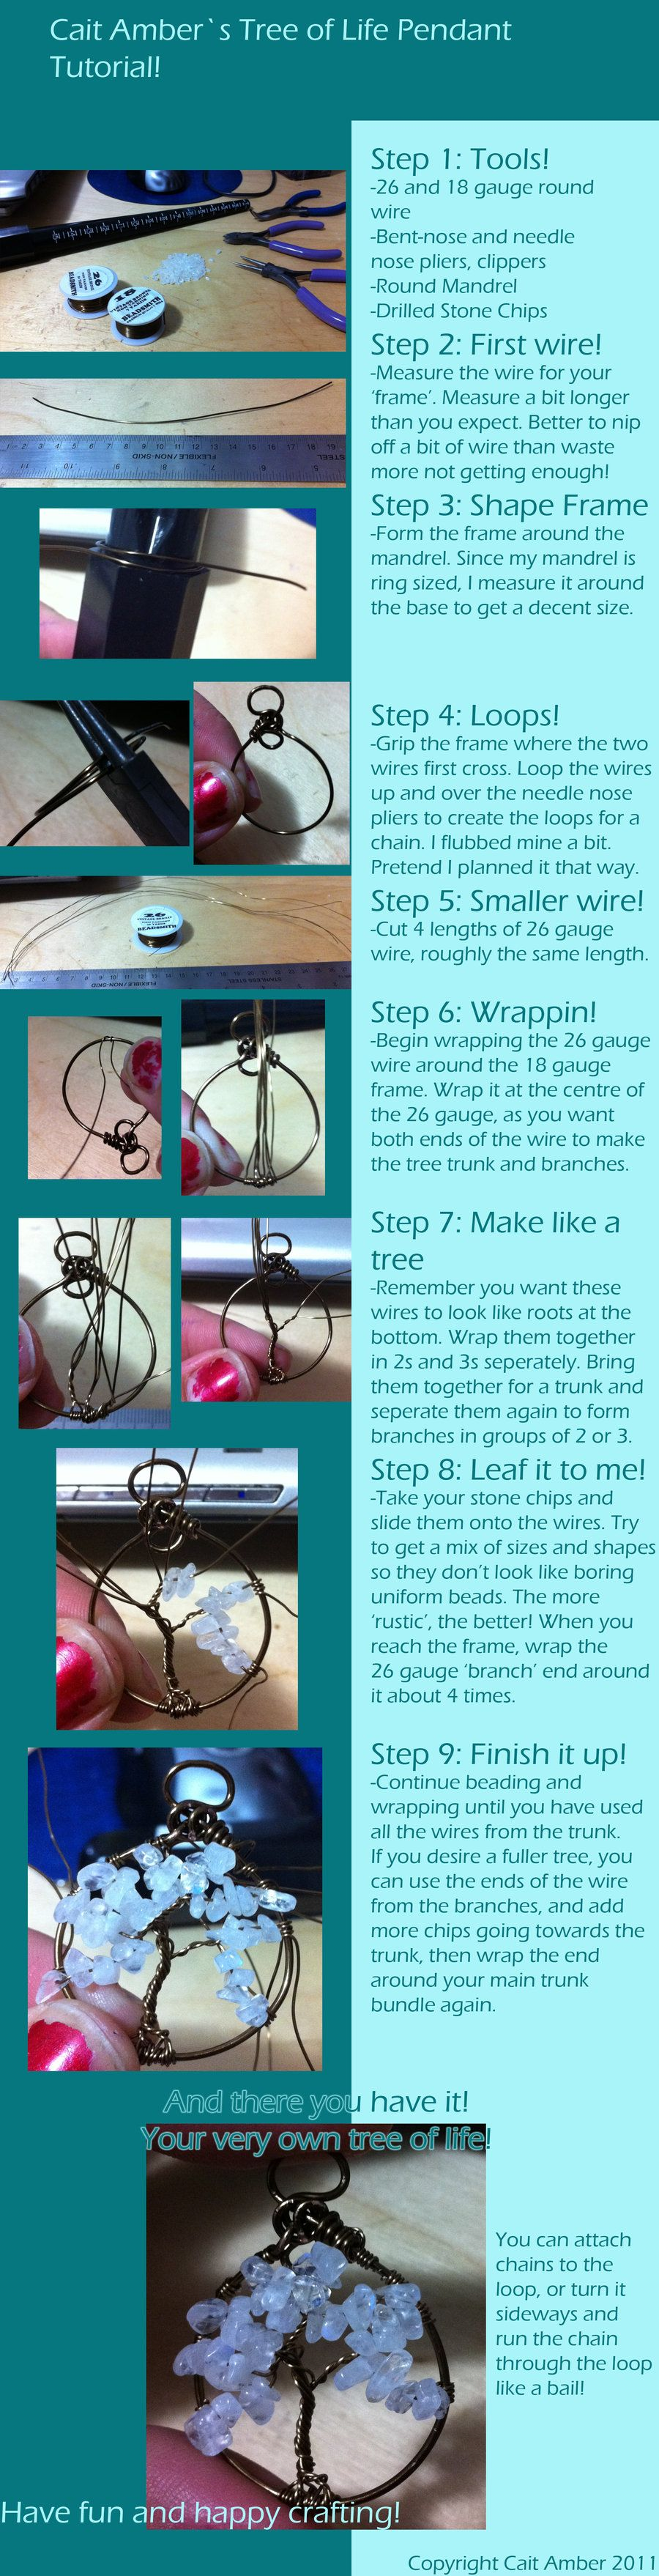 Tree of Life Pendant Tutorial by tanyquil.deviantart.com on @deviantART